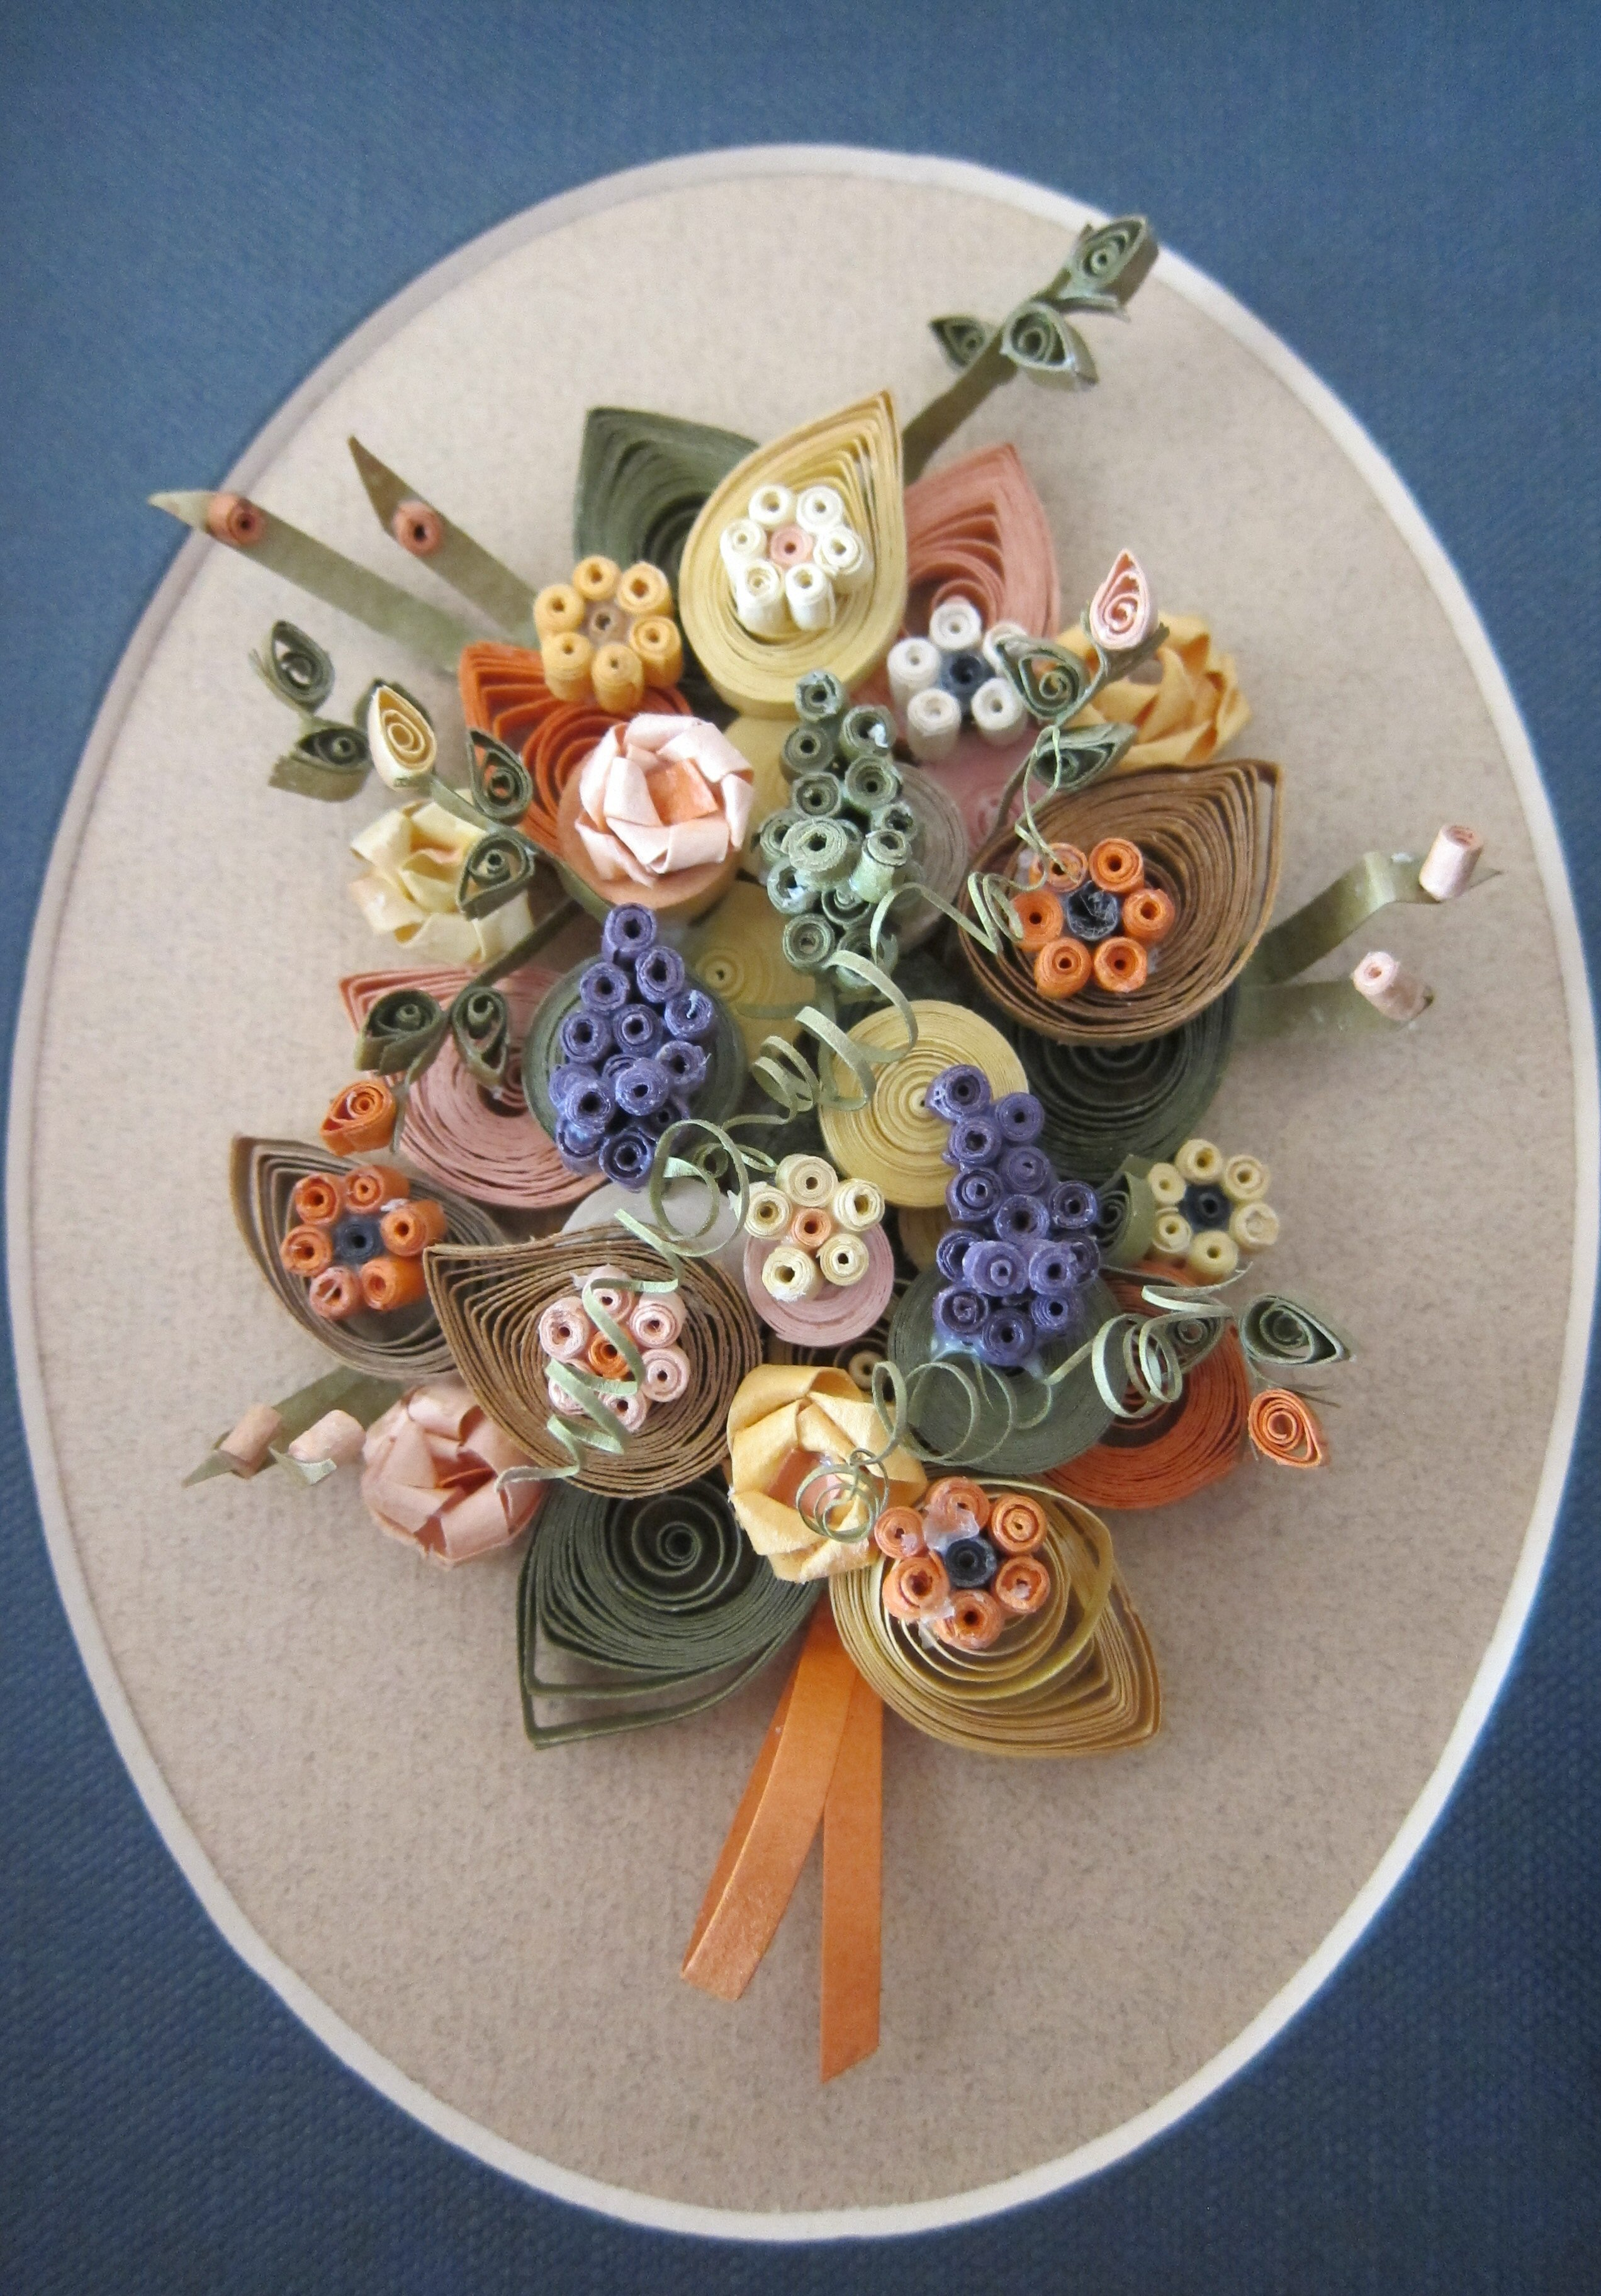 Quilling Paper Filigree Quilling or Paper Filigree is